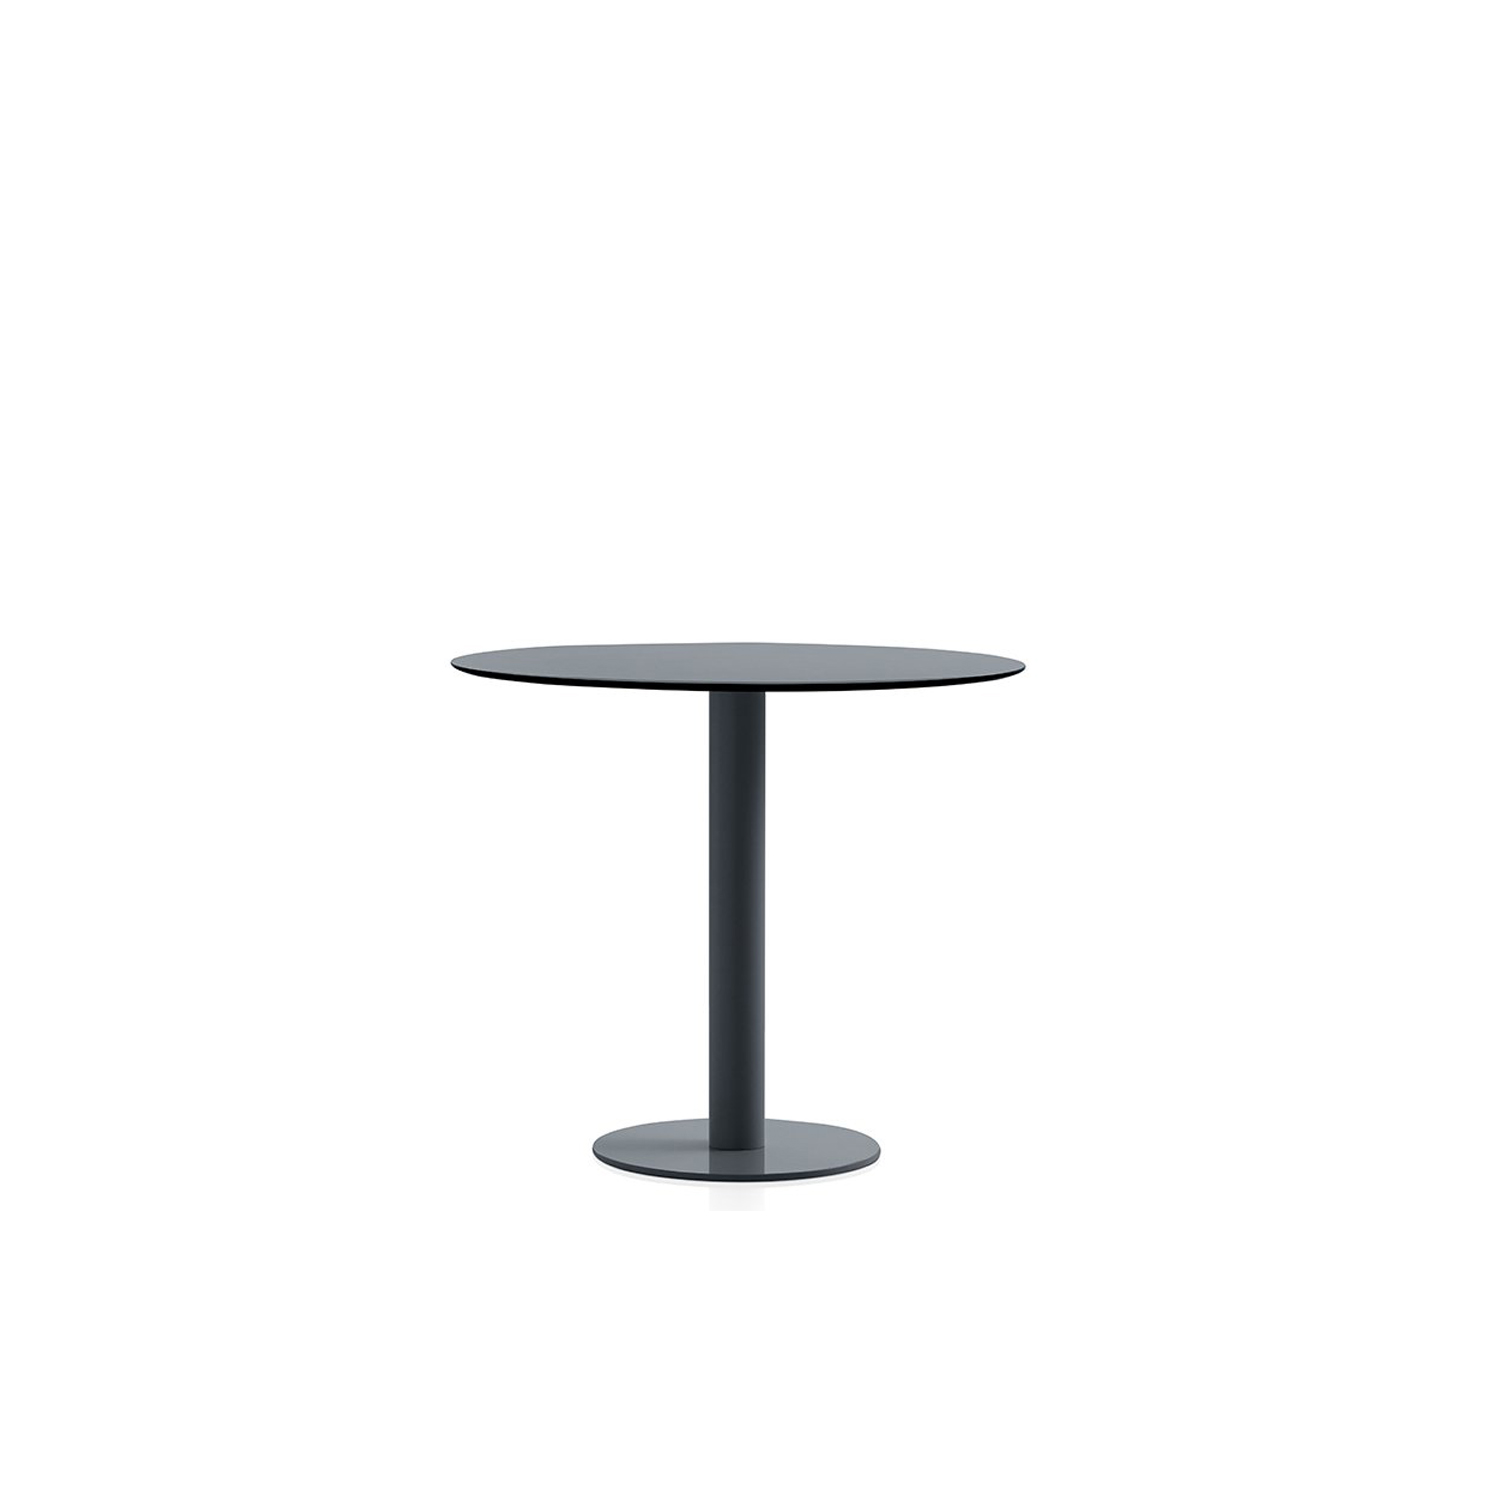 Mona Coffee Table - This is our low round table from the Mona series, a design with a single-leg structure to which you can give a lot of different uses. It can work as a coffee table or as an auxiliary table, depending on the tabletop diameter you select. There are three sizes available: 70, 80 and 90 cm. Aside from its design, which works well with many styles, a big part of its appeal is its multiple colour options.  Although it is specially designed to be used outdoors, it can also be used in indoor environments. | Matter of Stuff